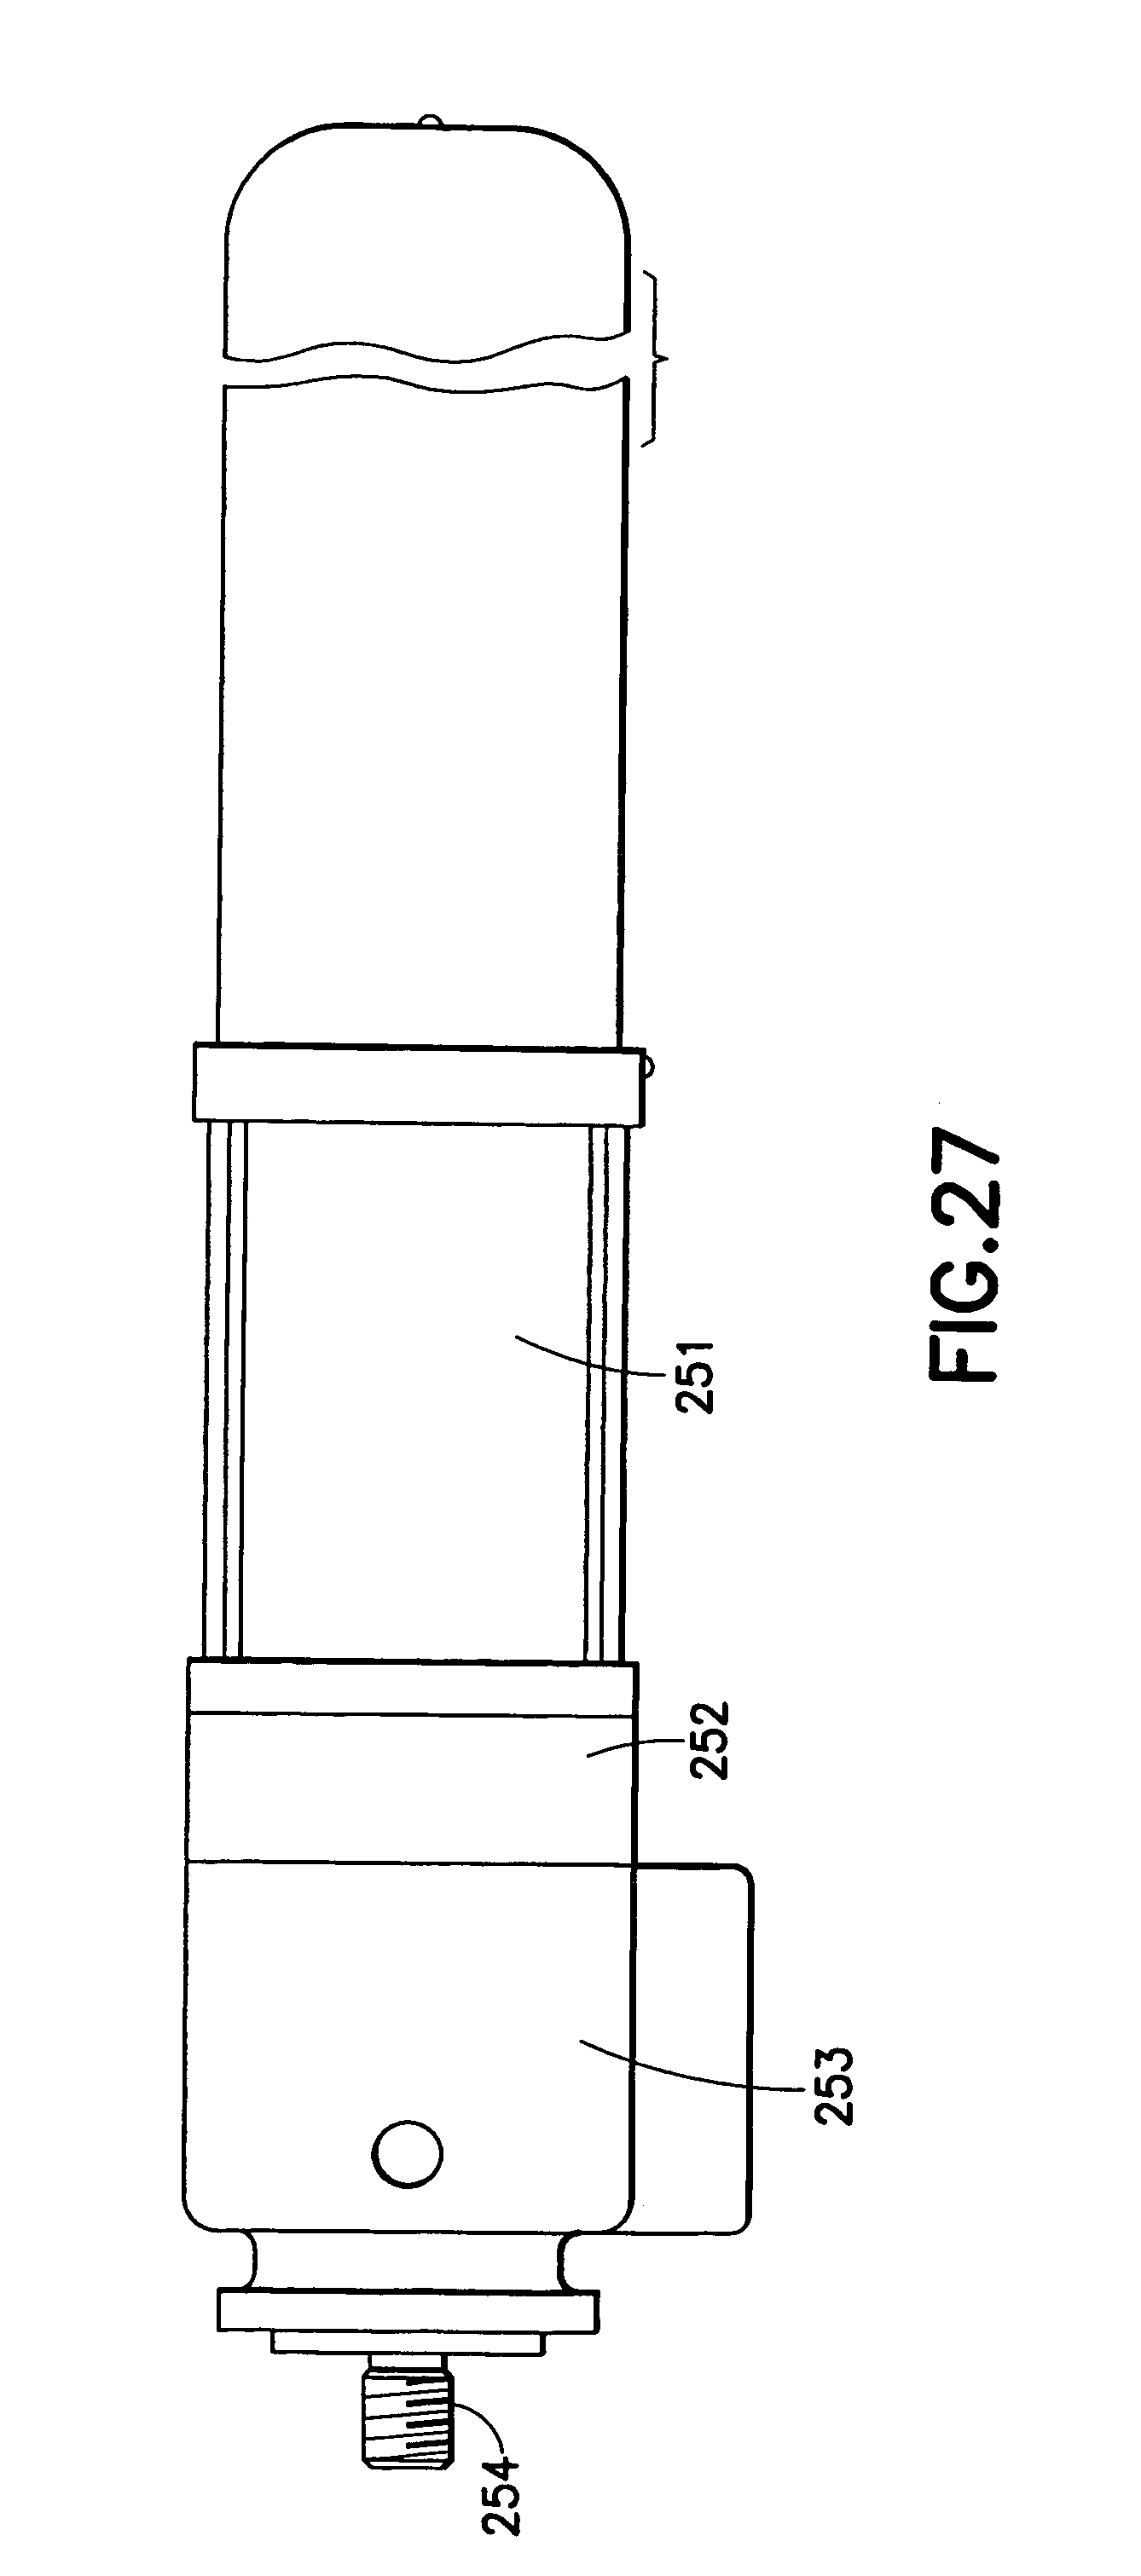 patent us7107767 - hydraulic energy storage systems